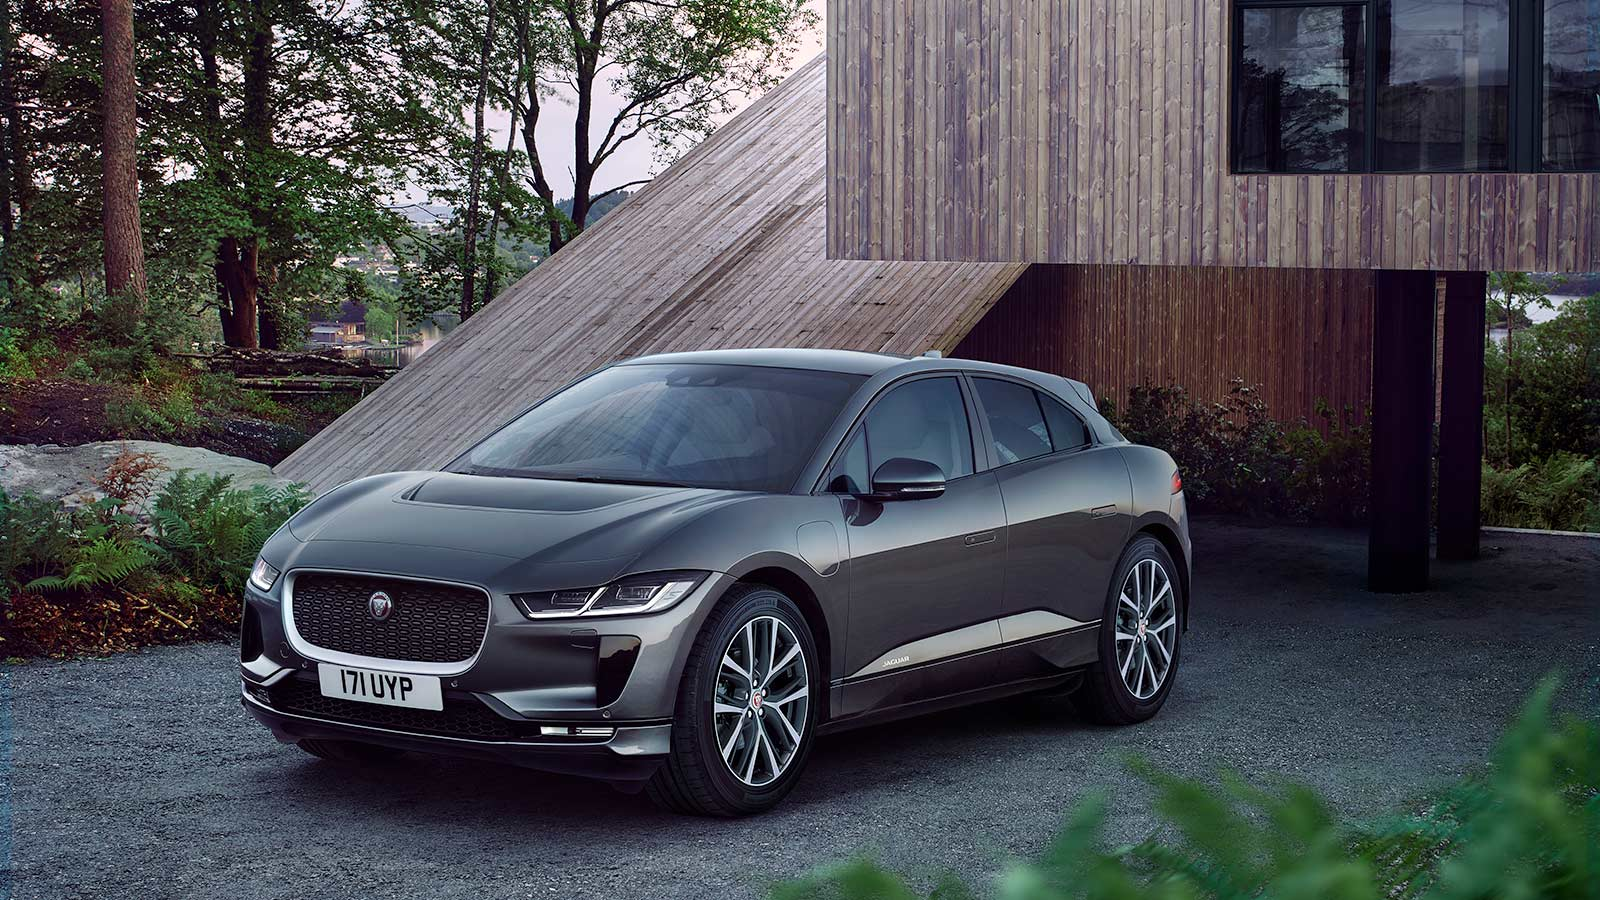 Jaguar I-PACE parked in front of a wooden suburb house.